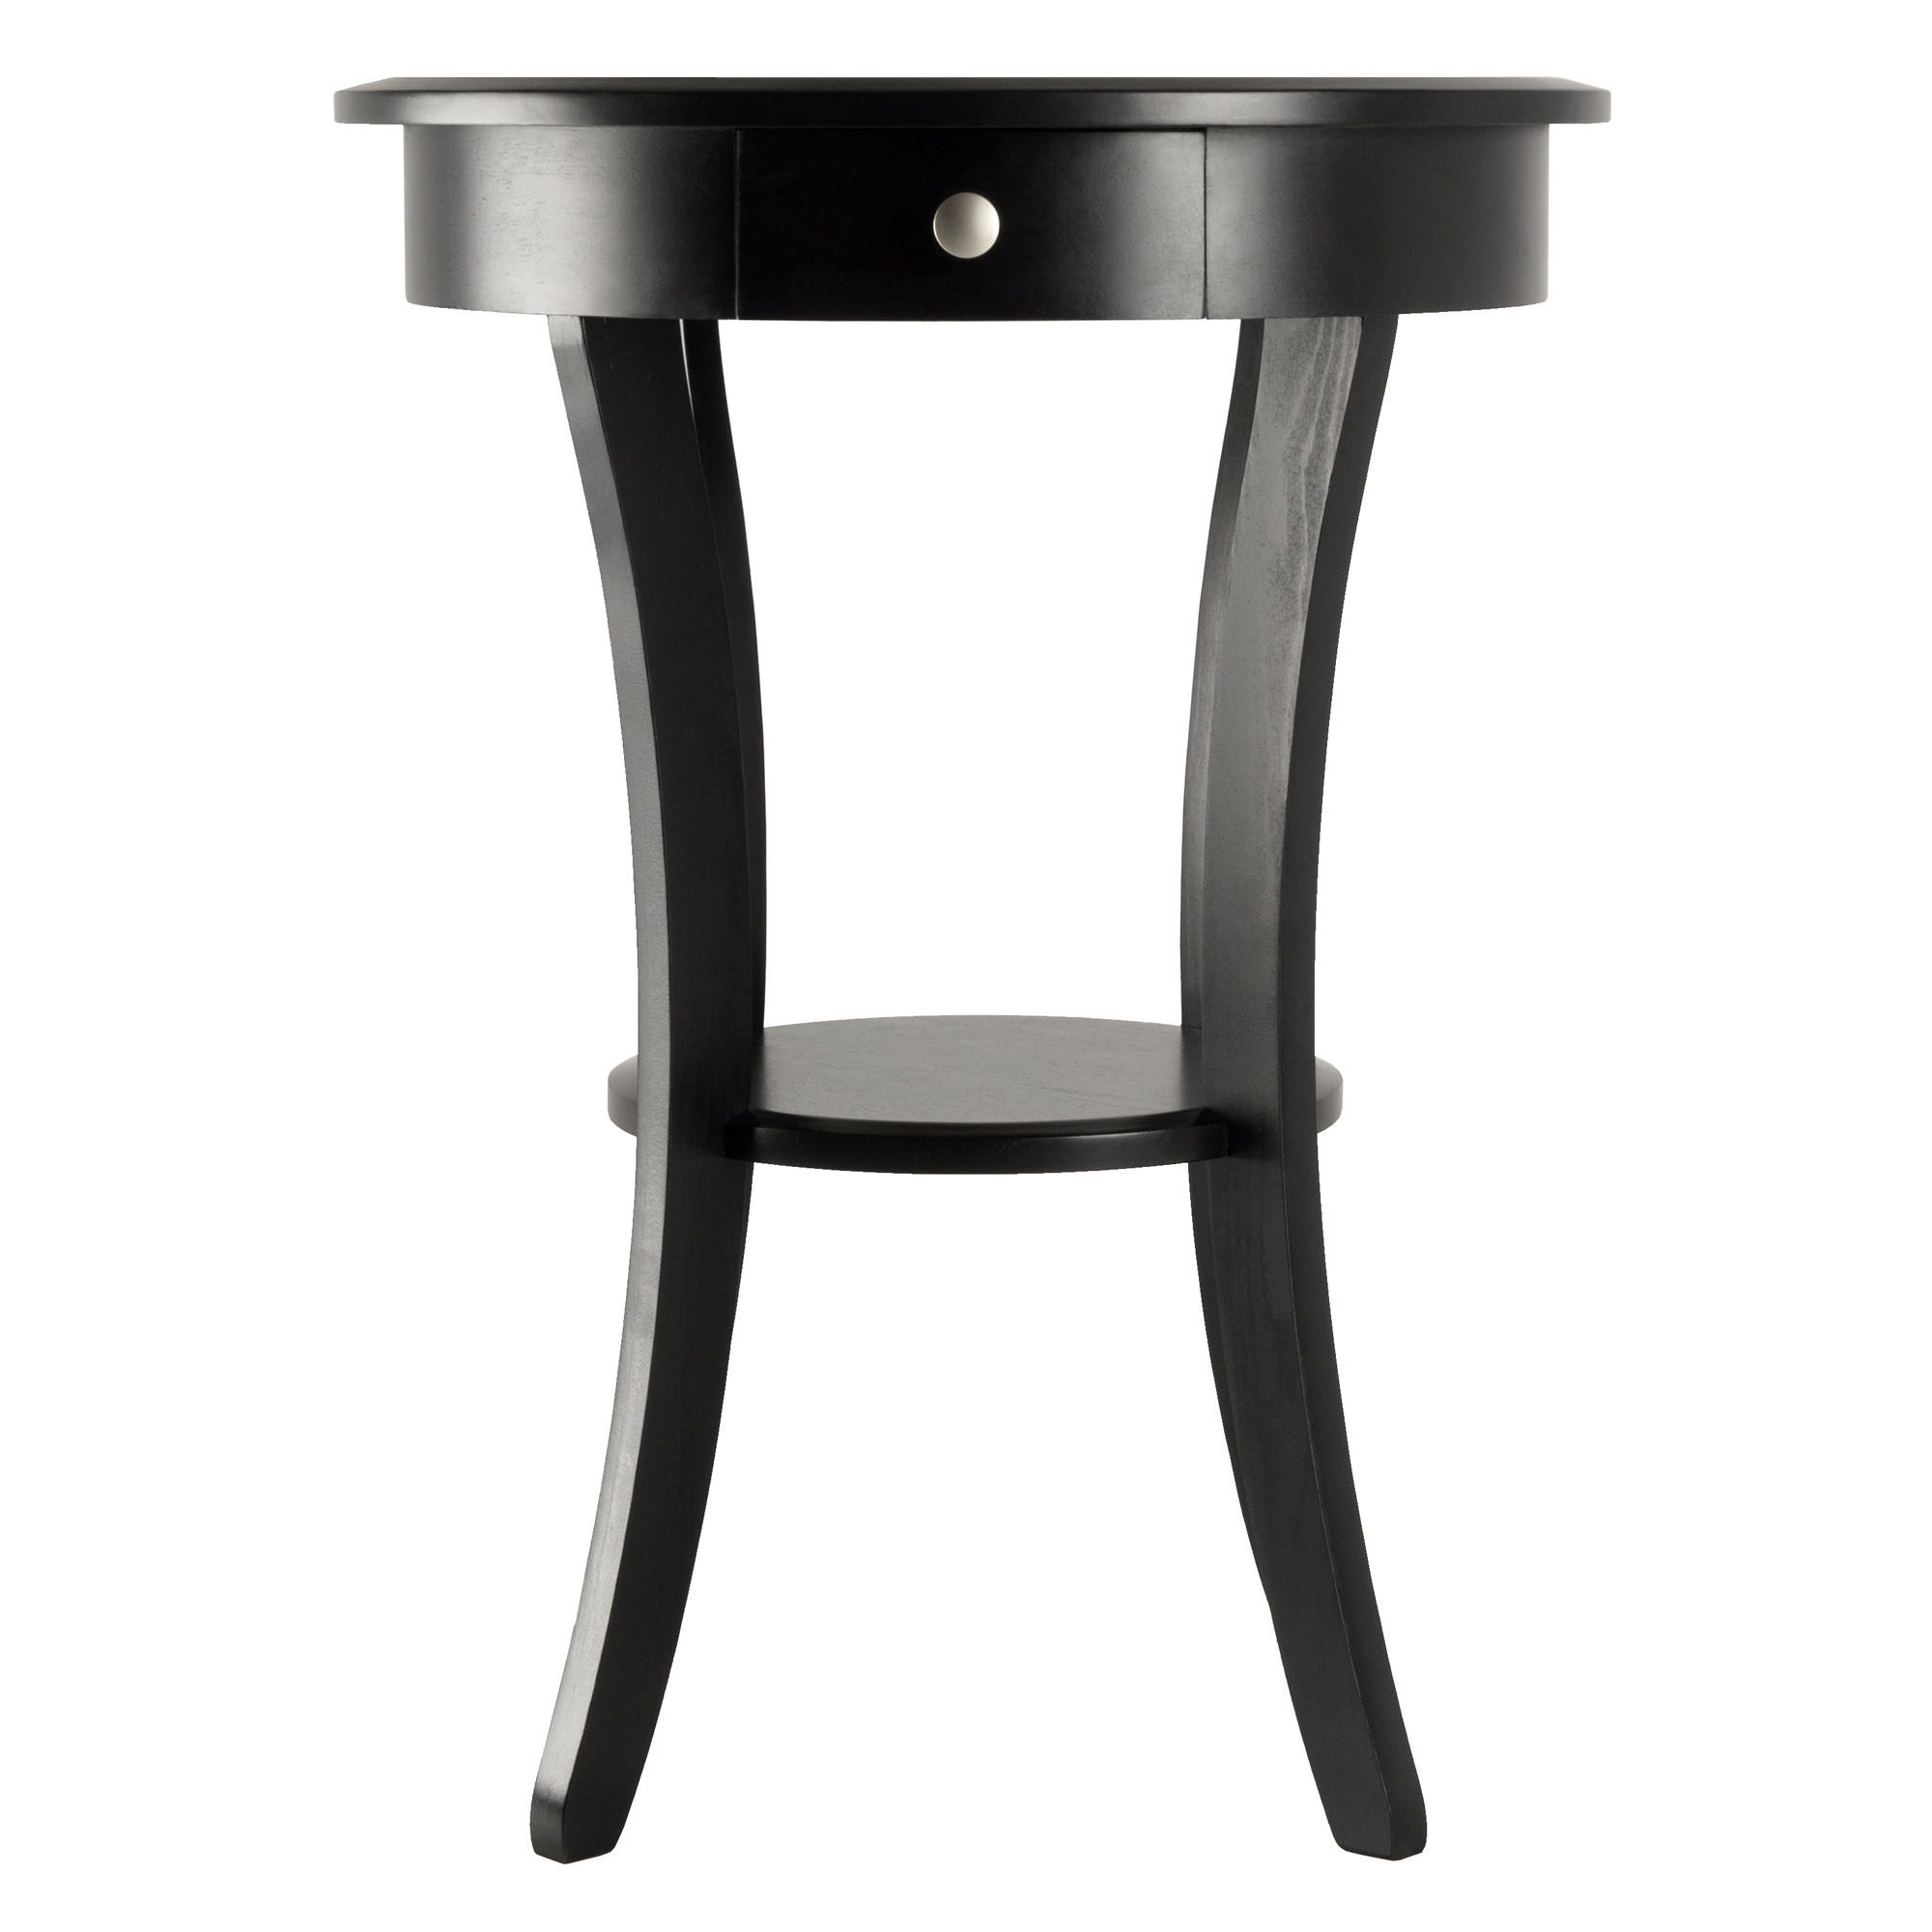 winsome wood sasha accent table black finish multiple colors eugene white dining accents foremost vanity gold geometric end light cherry tables coffee ideas for small spaces